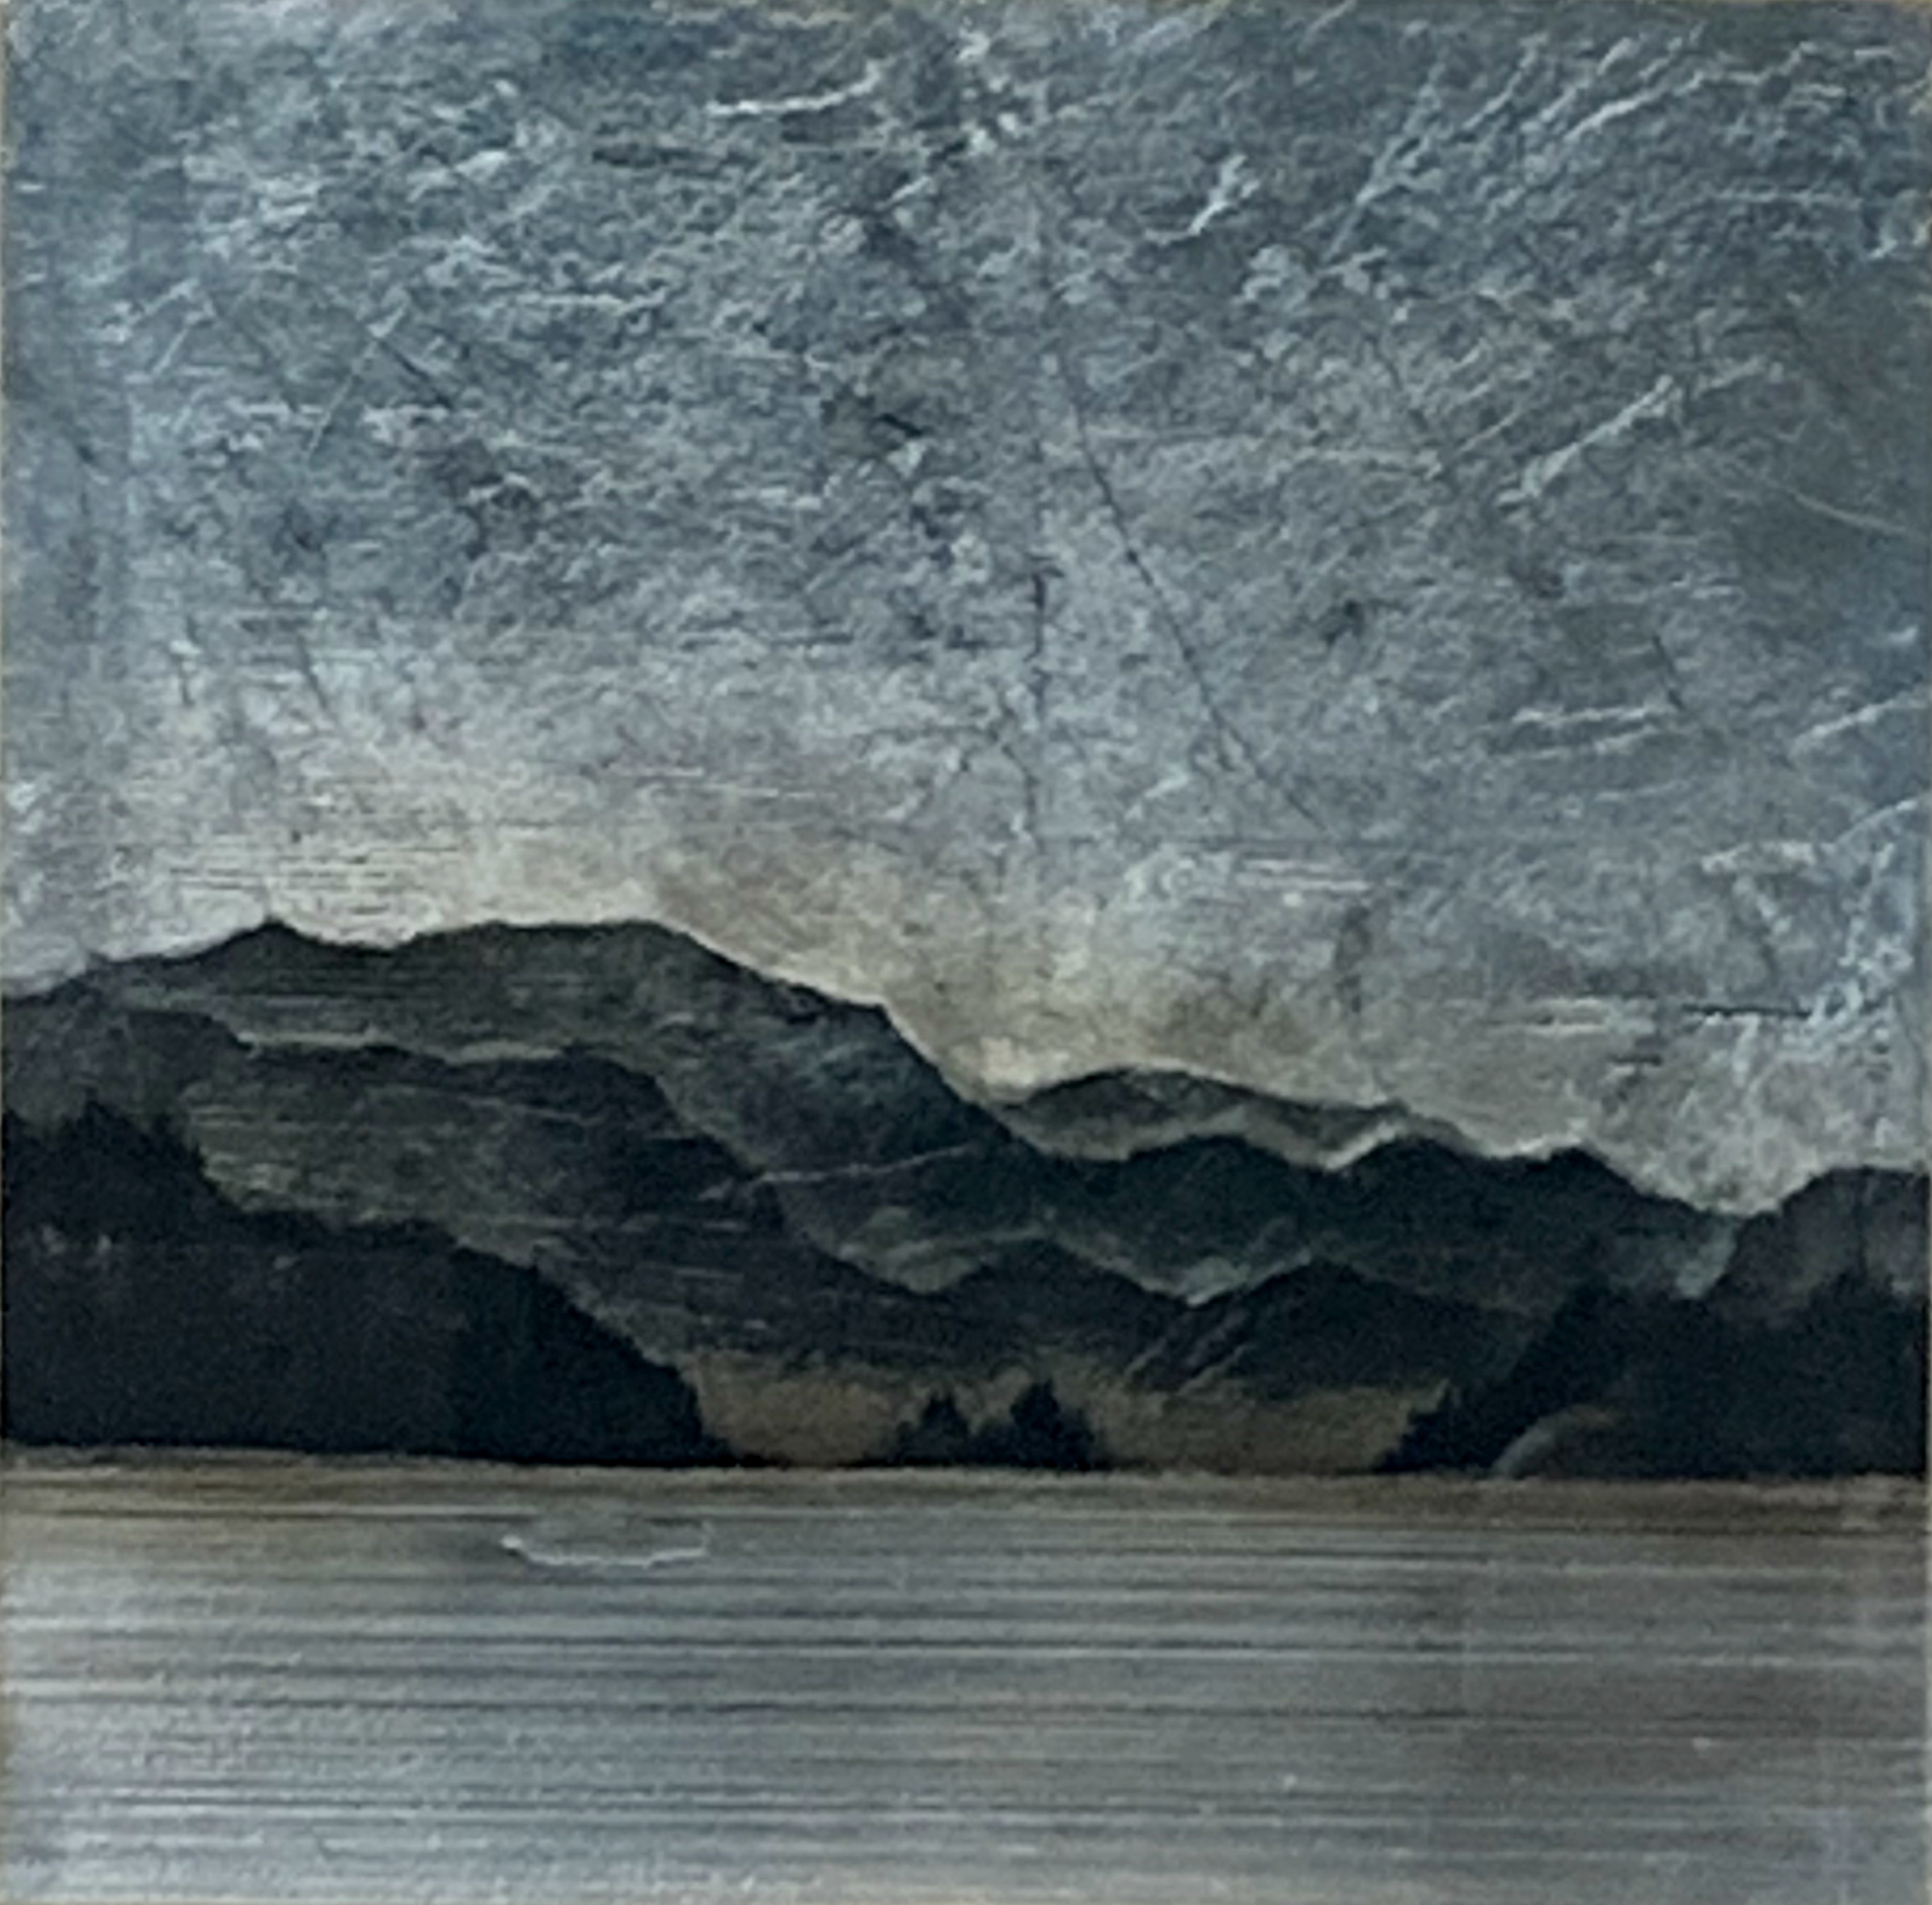 557, mixed media landscape painting by David Graff | Effusion Art Gallery + Cast Glass Studio, Invermere BC